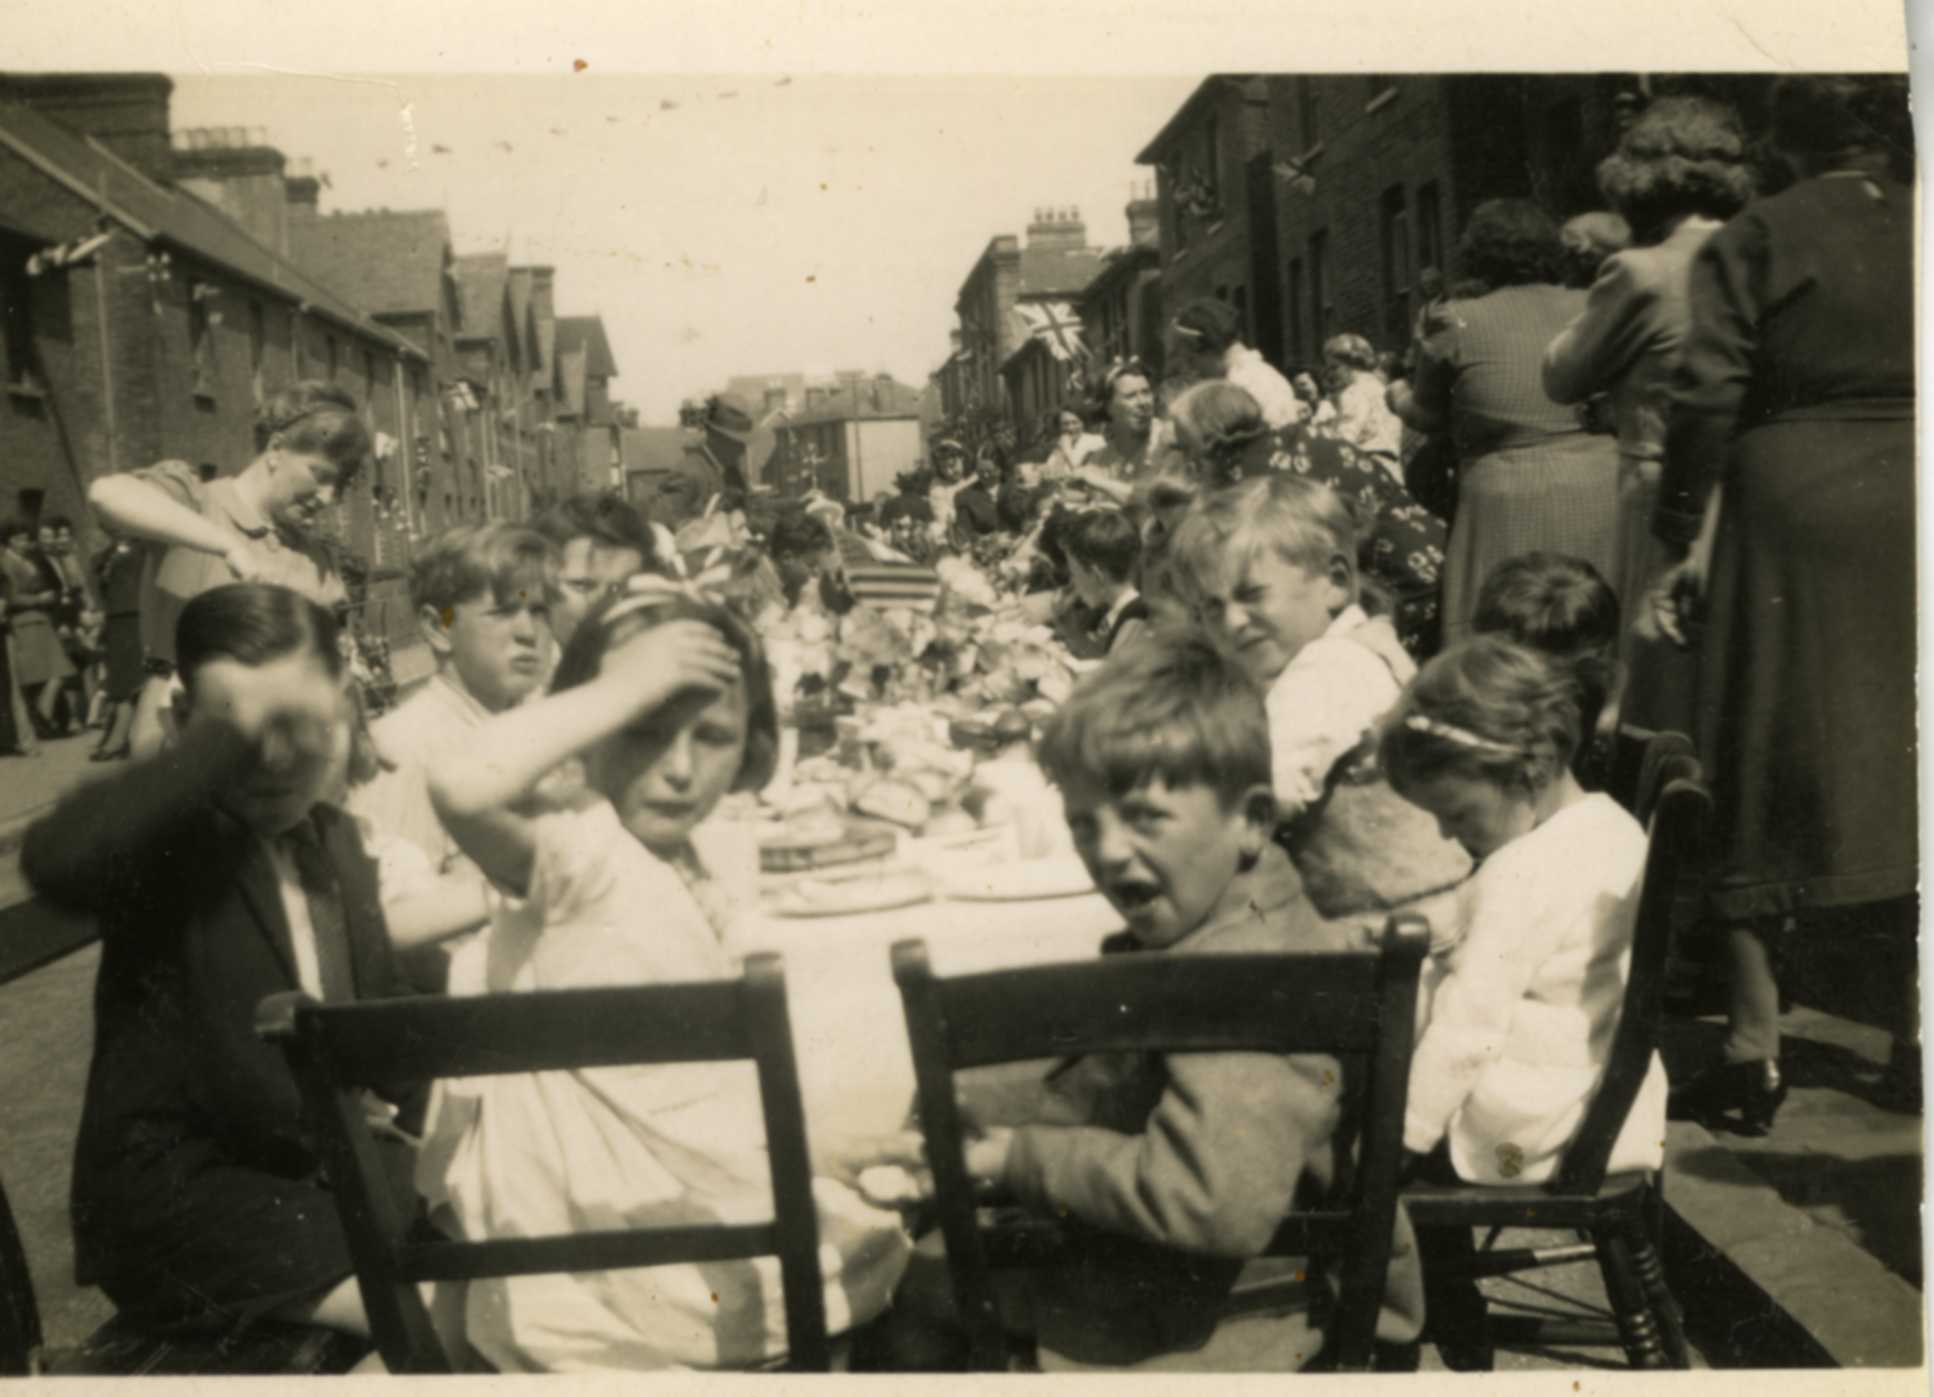 A black and white photograph with children seated at a table.